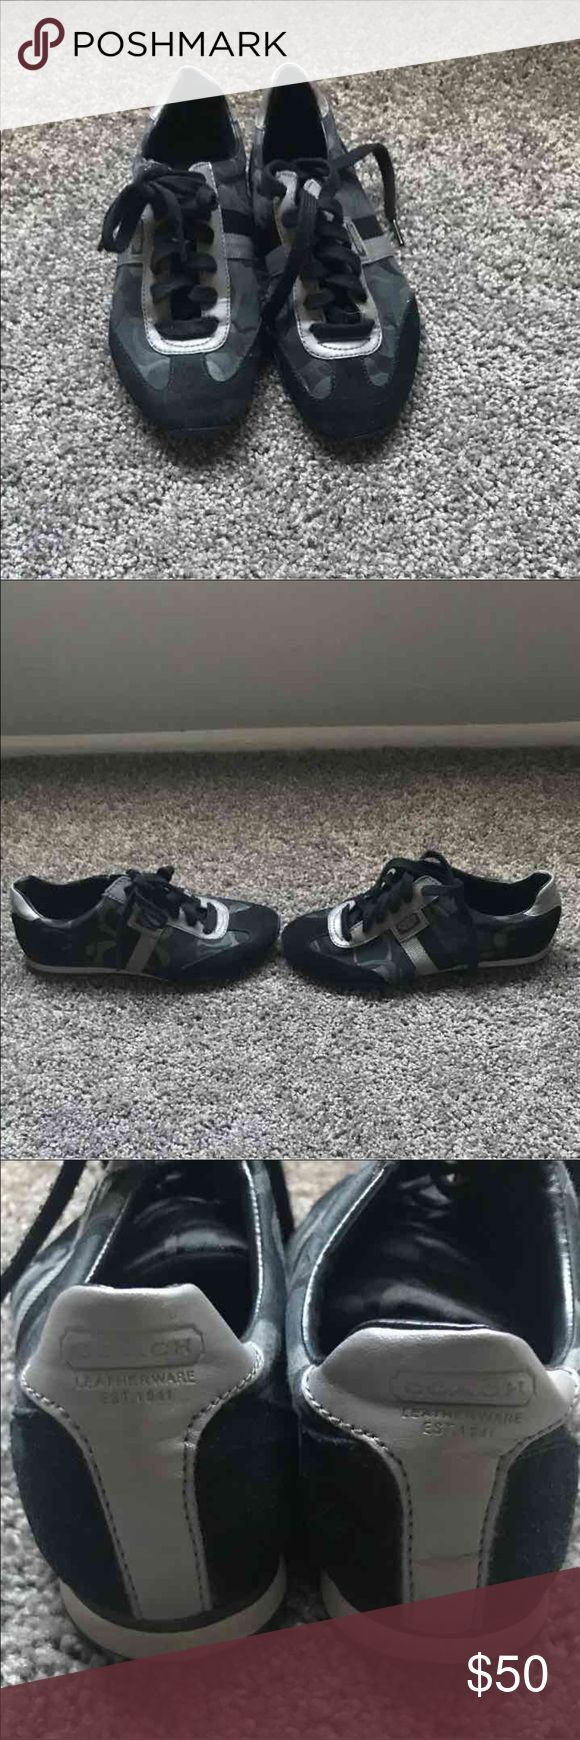 Black/Gray Coach sneakers Very comfortable coach sneakers lightly used. Coach Shoes Sneakers